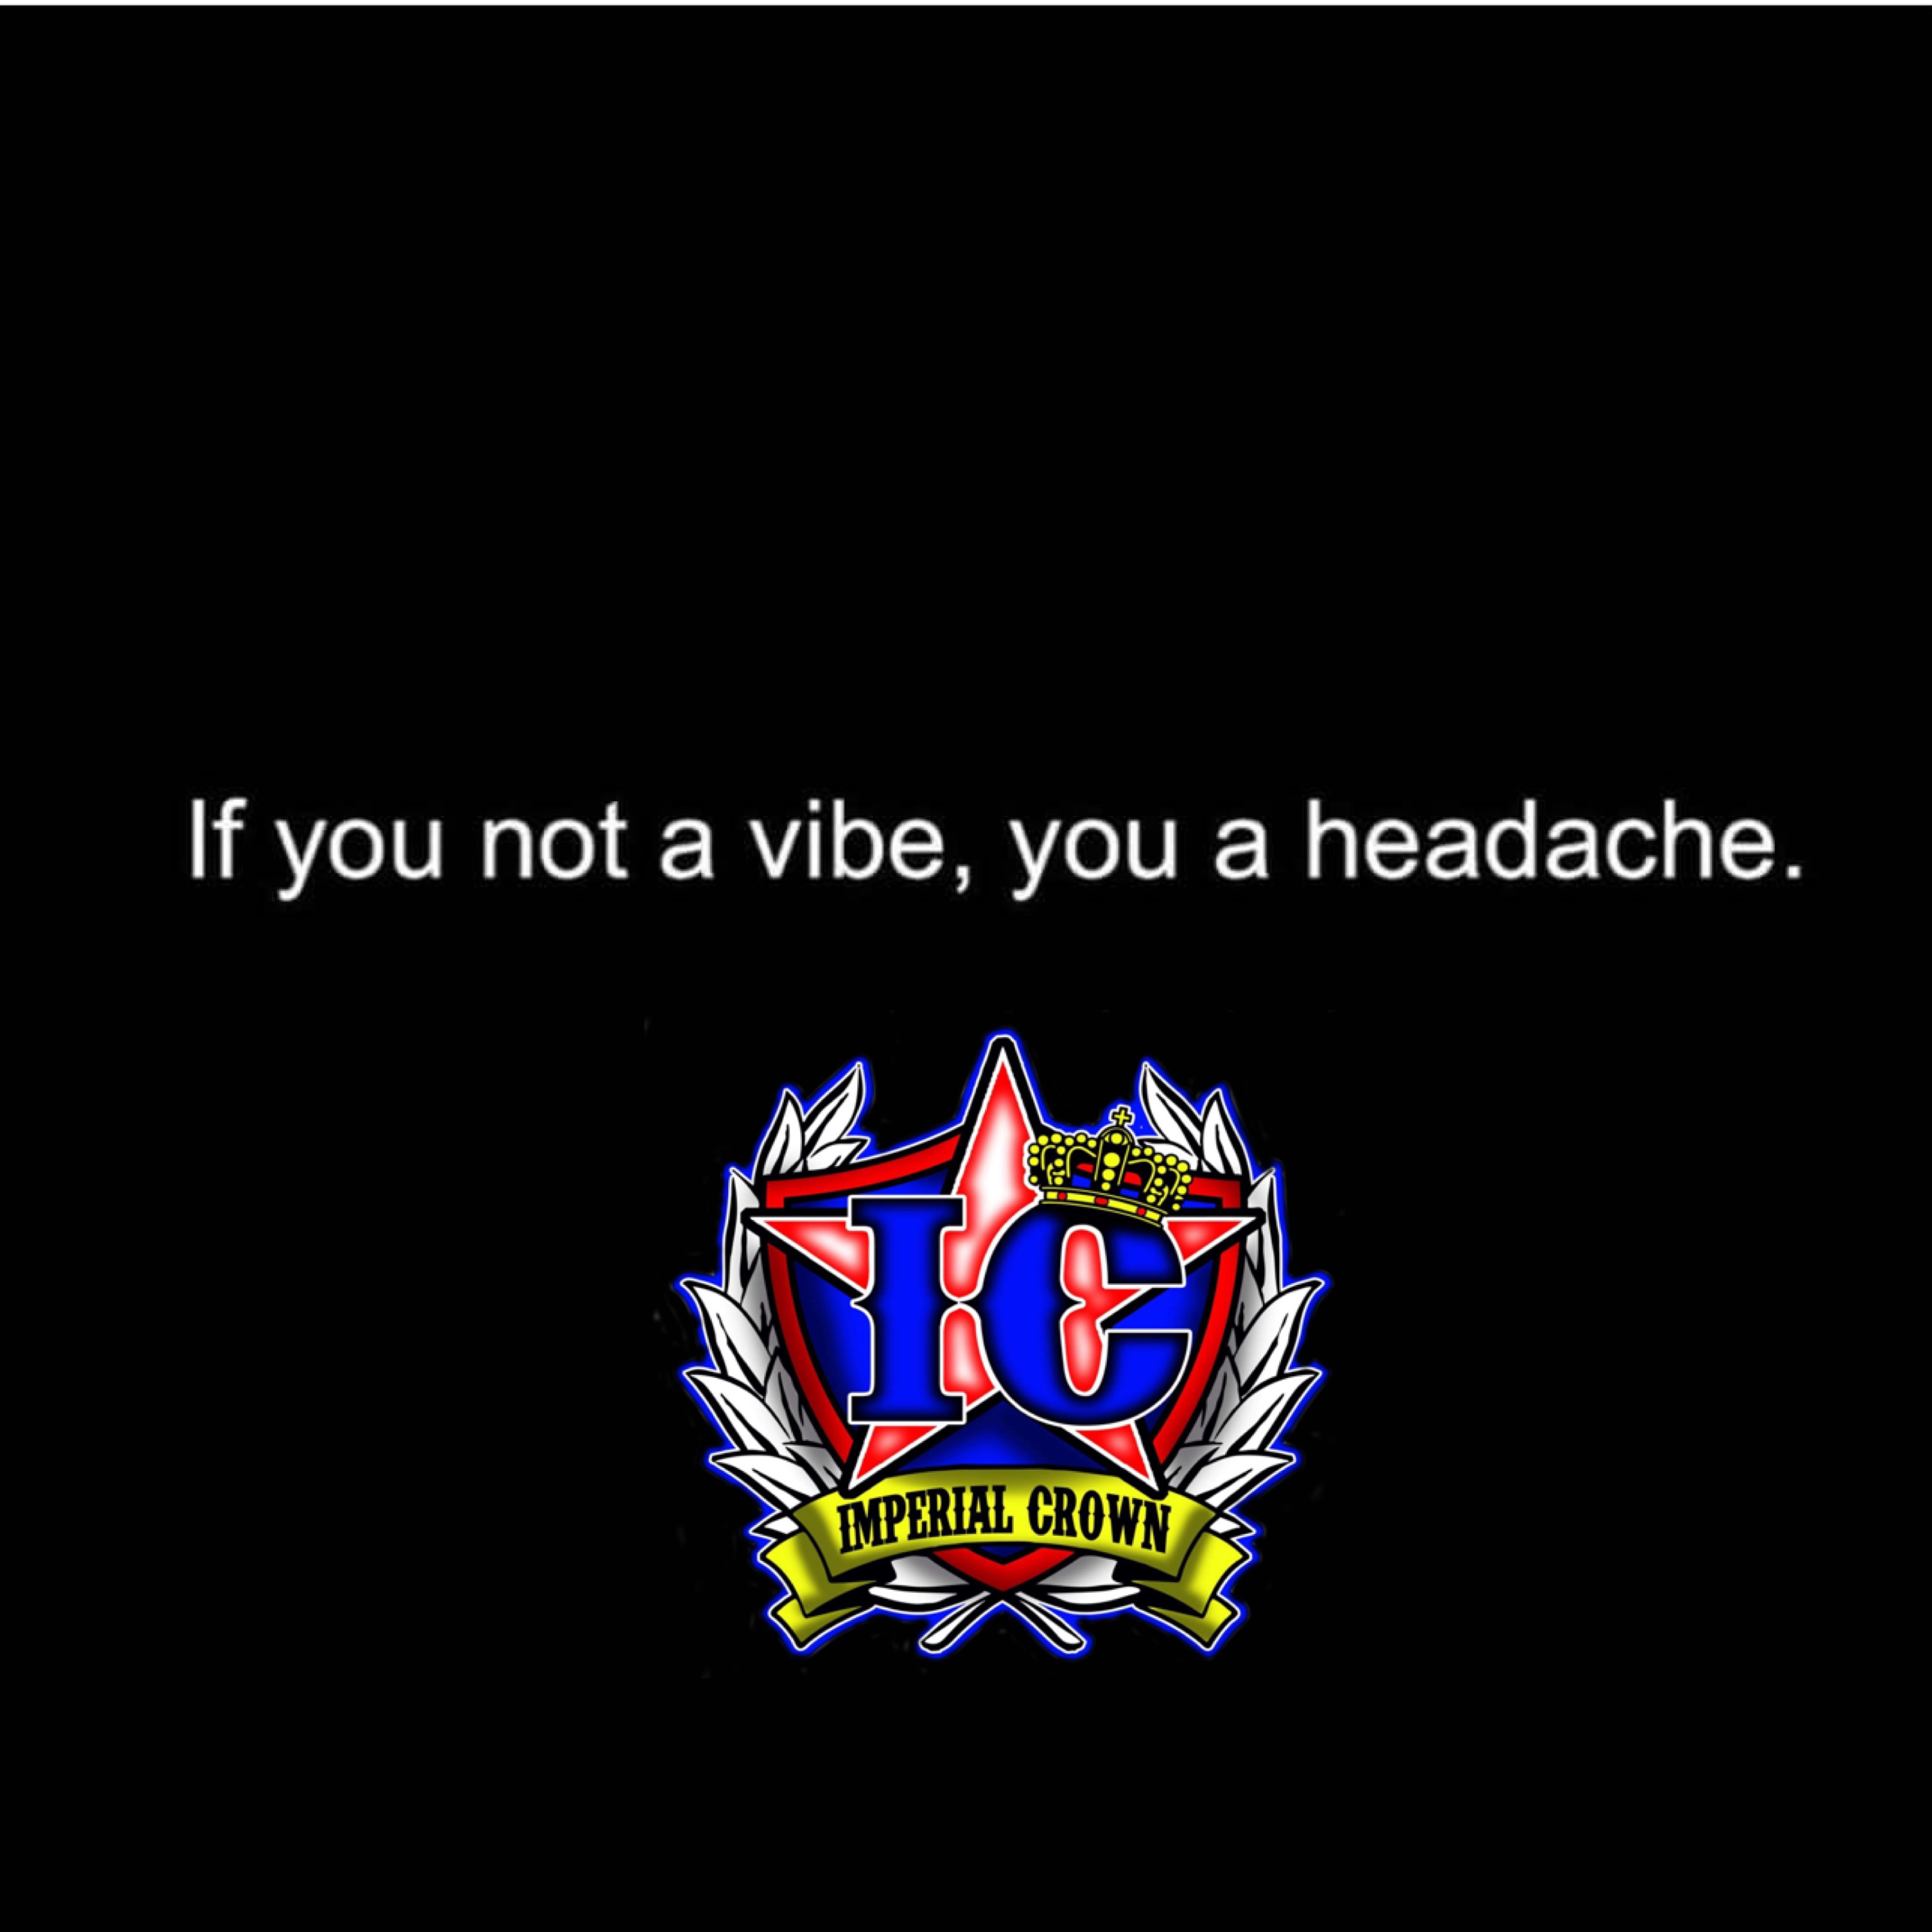 If you not a vibe you a headache